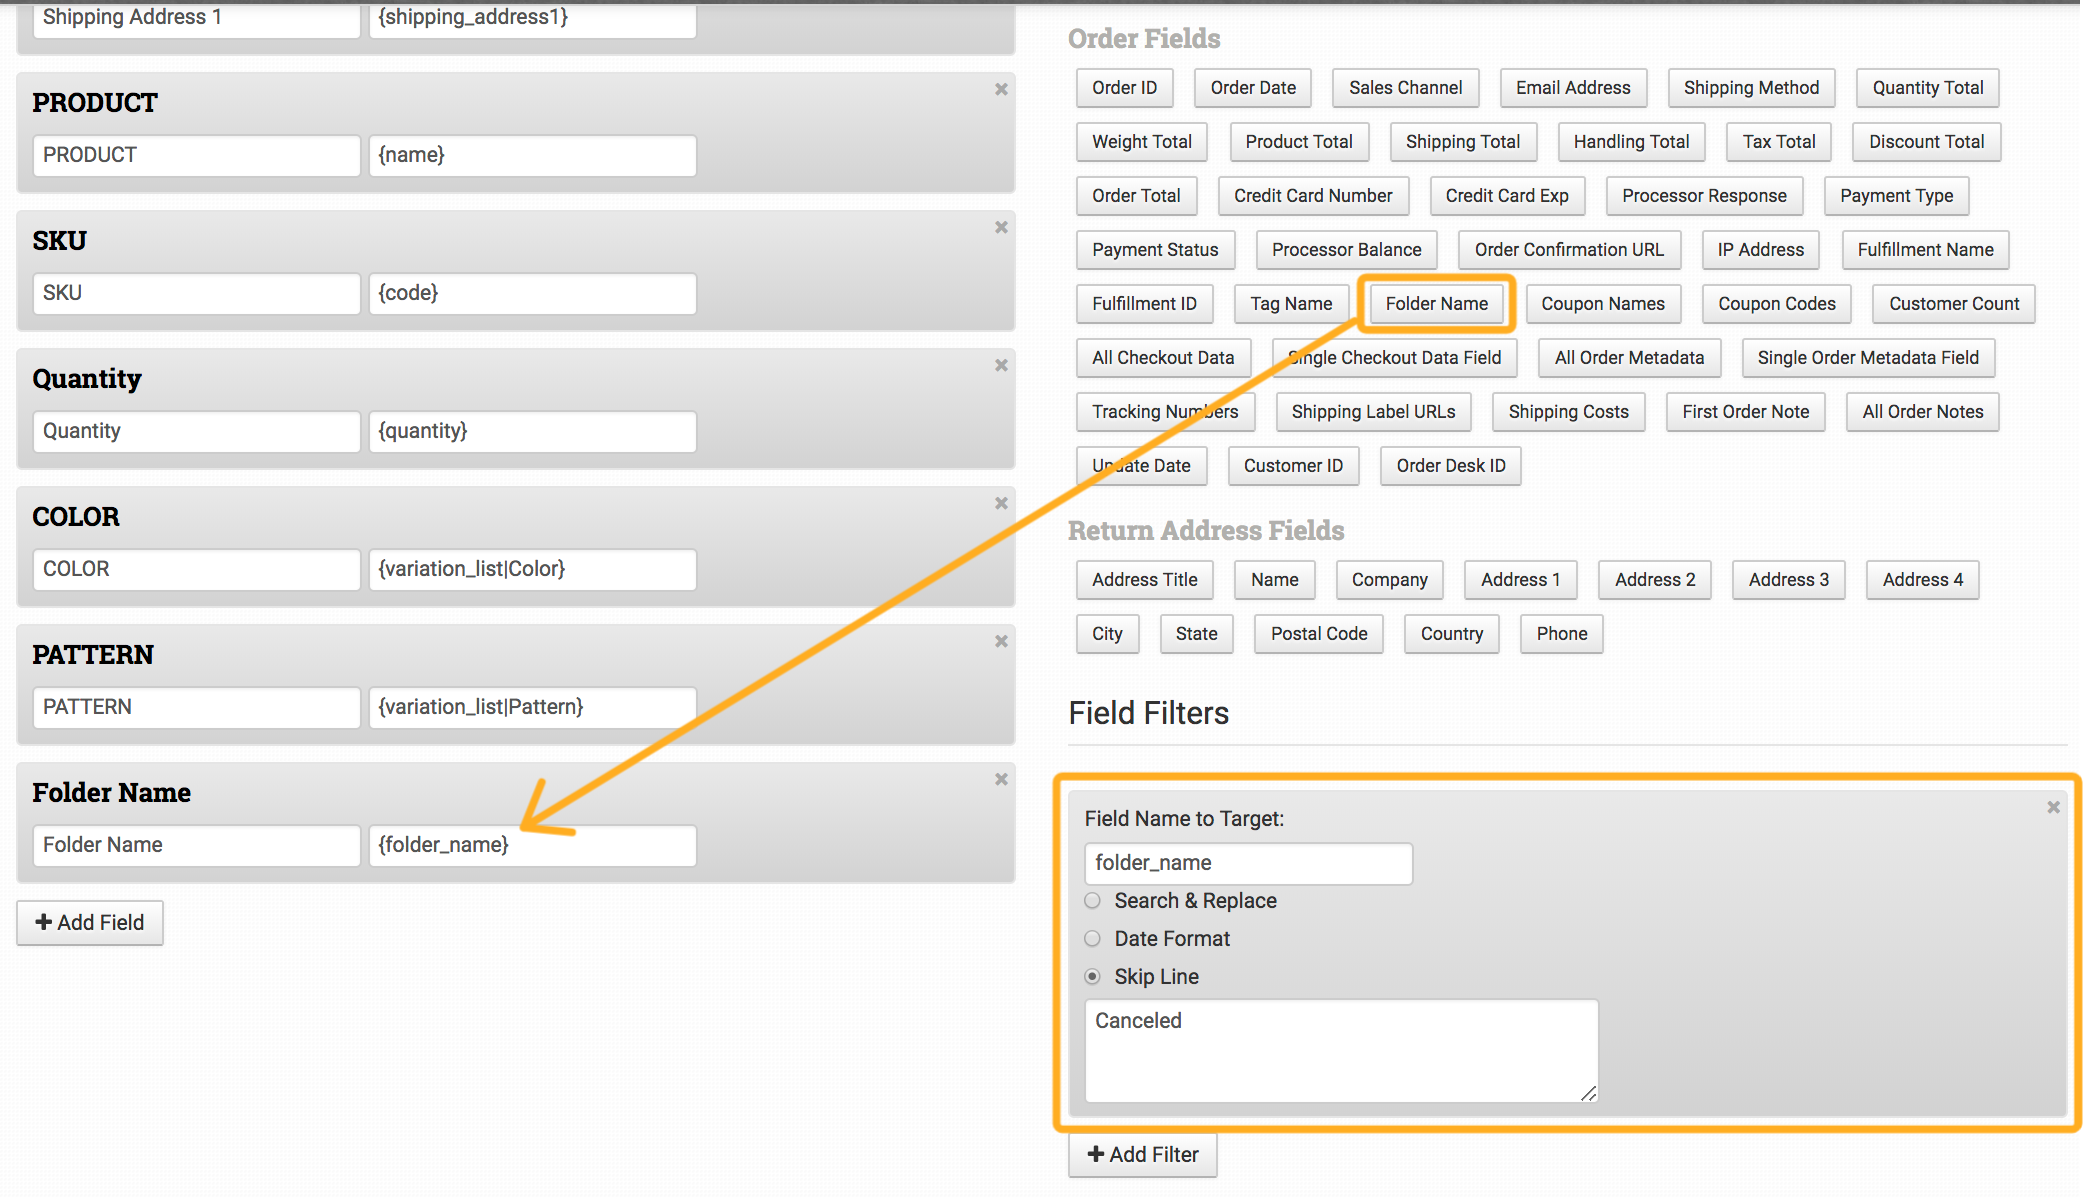 How to Build Export Templates: Filters & Custom Fields - Order Desk ...